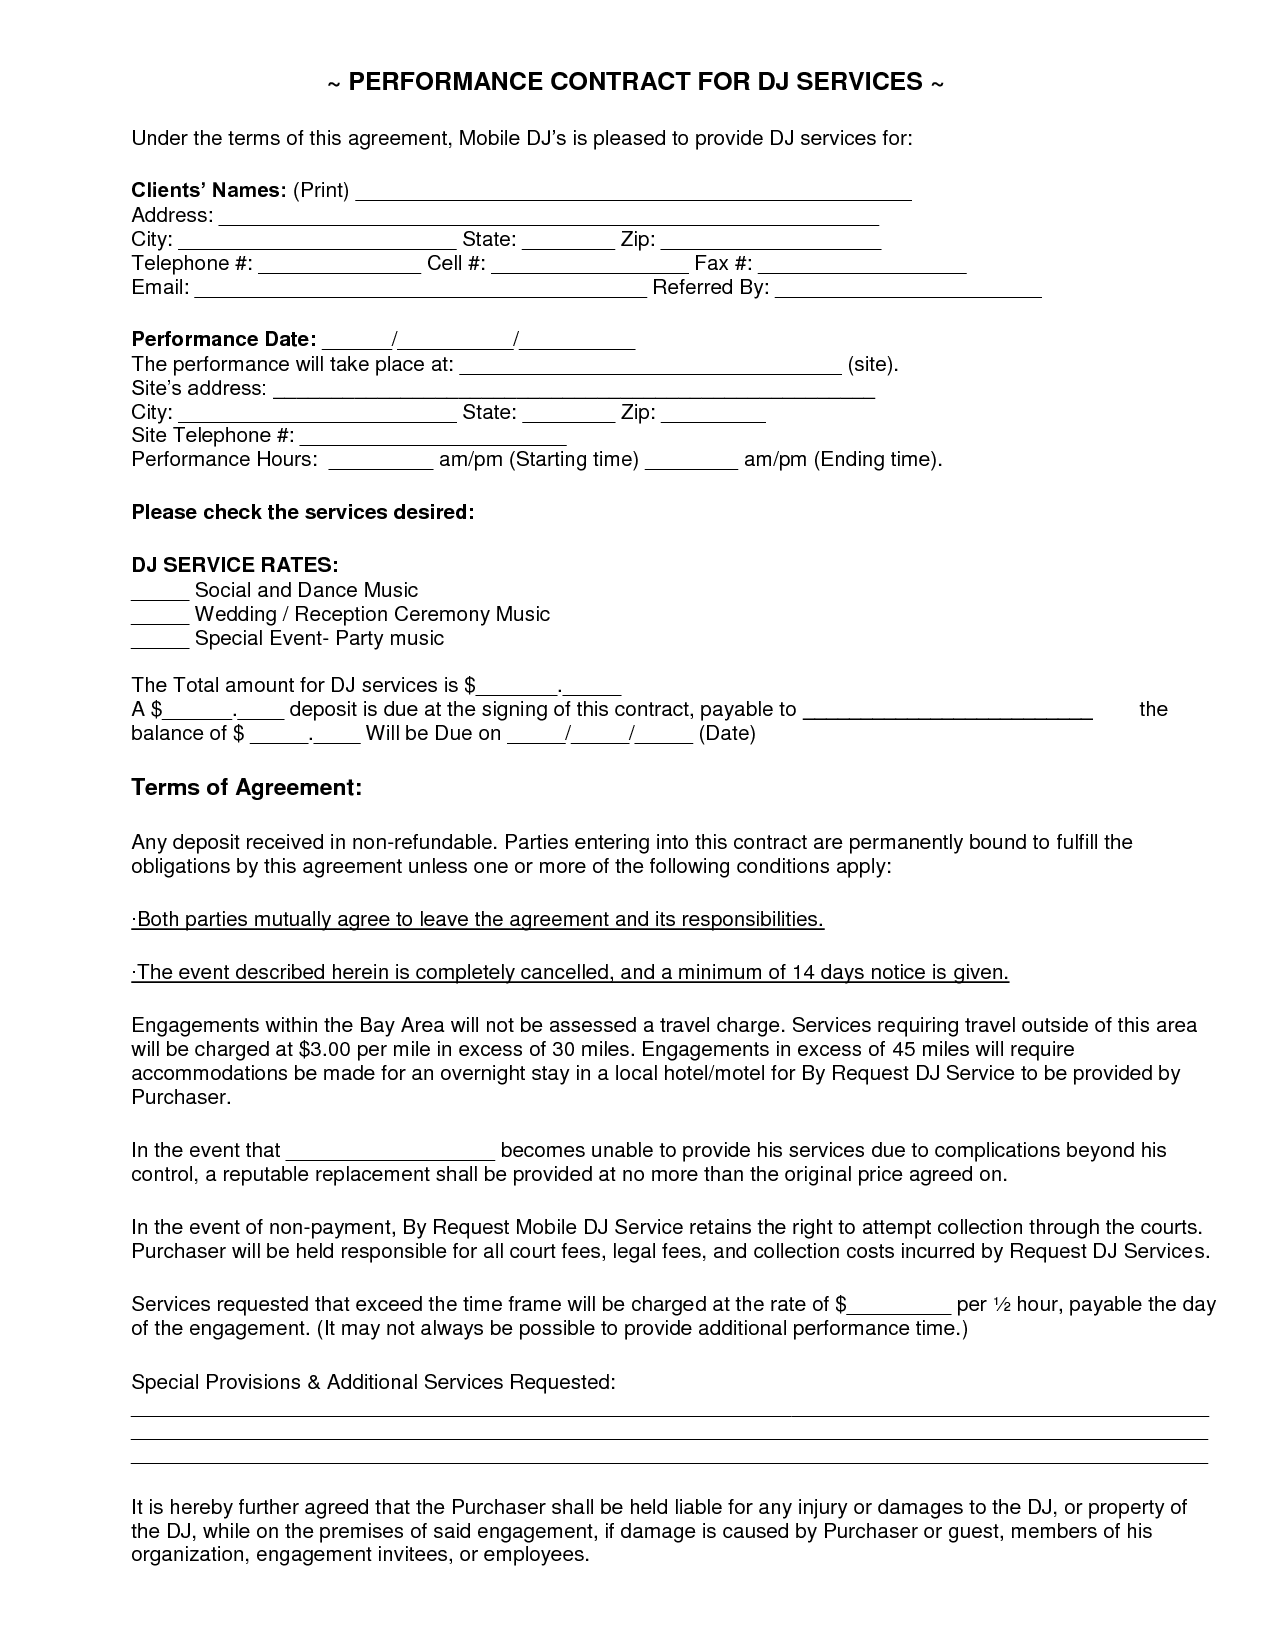 mobile dj contract dj service contract 2011 current With mobile dj contract template